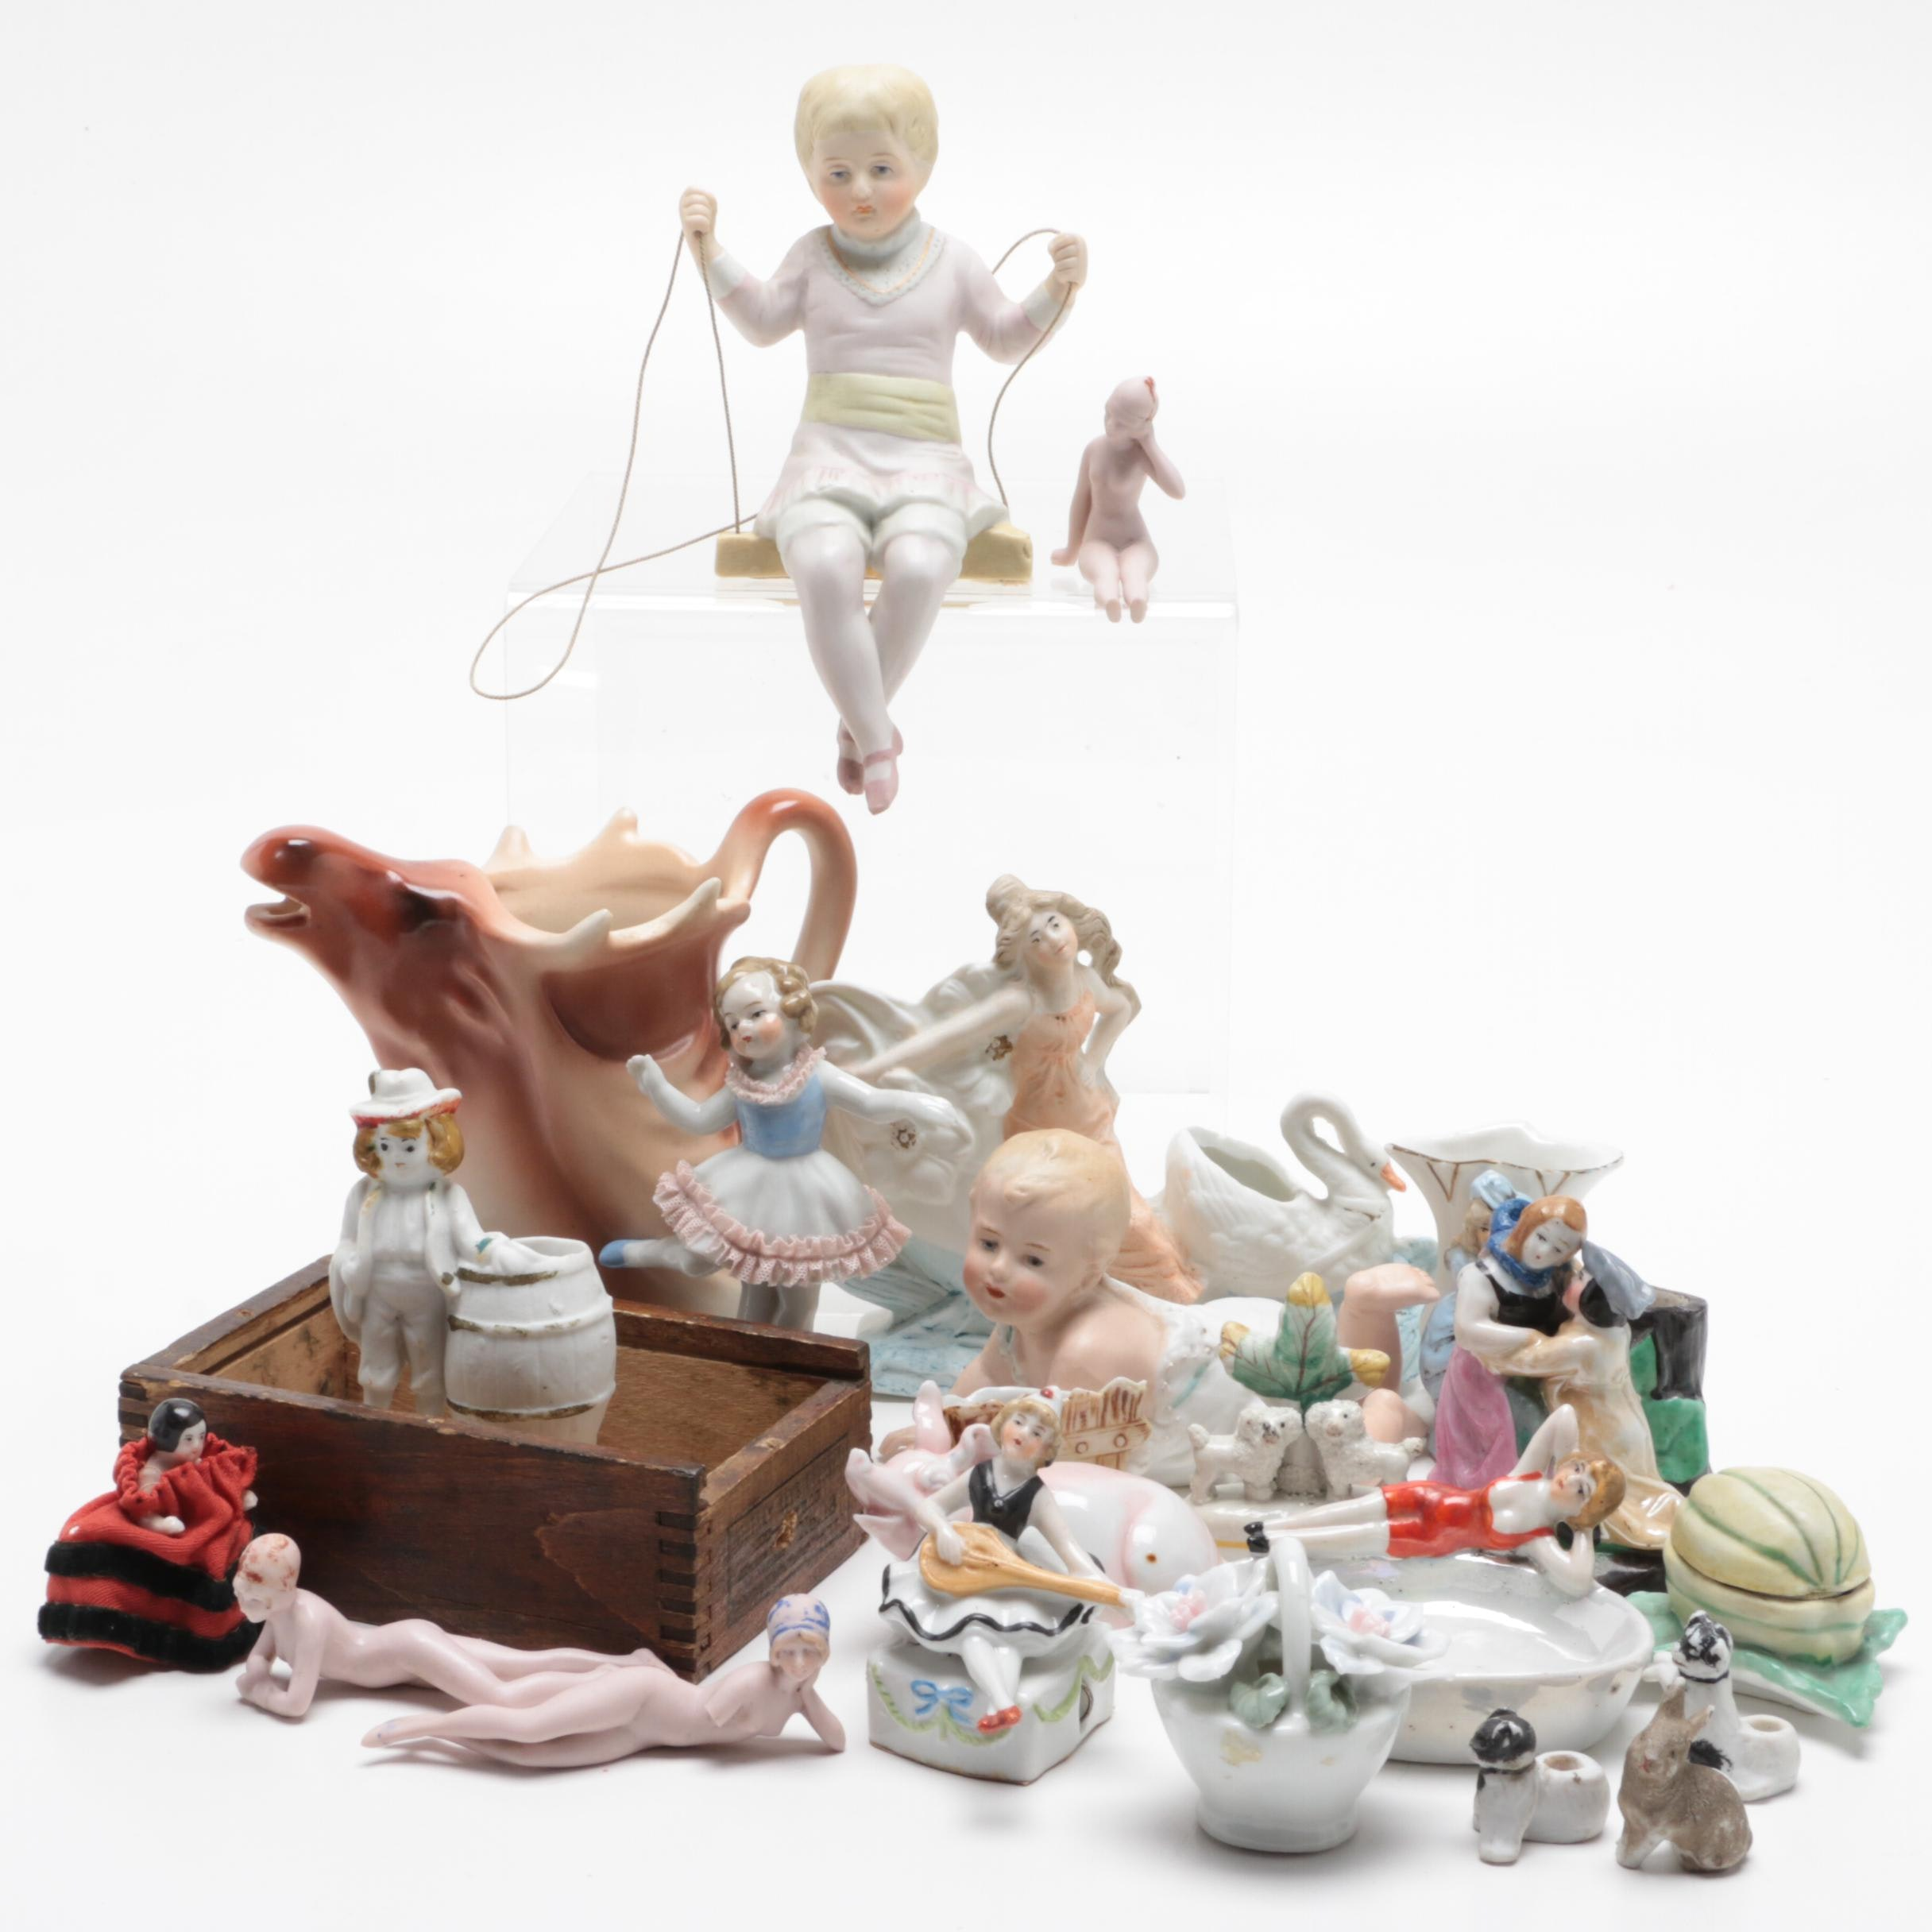 Hand-Painted Porcelain and Ceramic Figurines, Early 20th Century